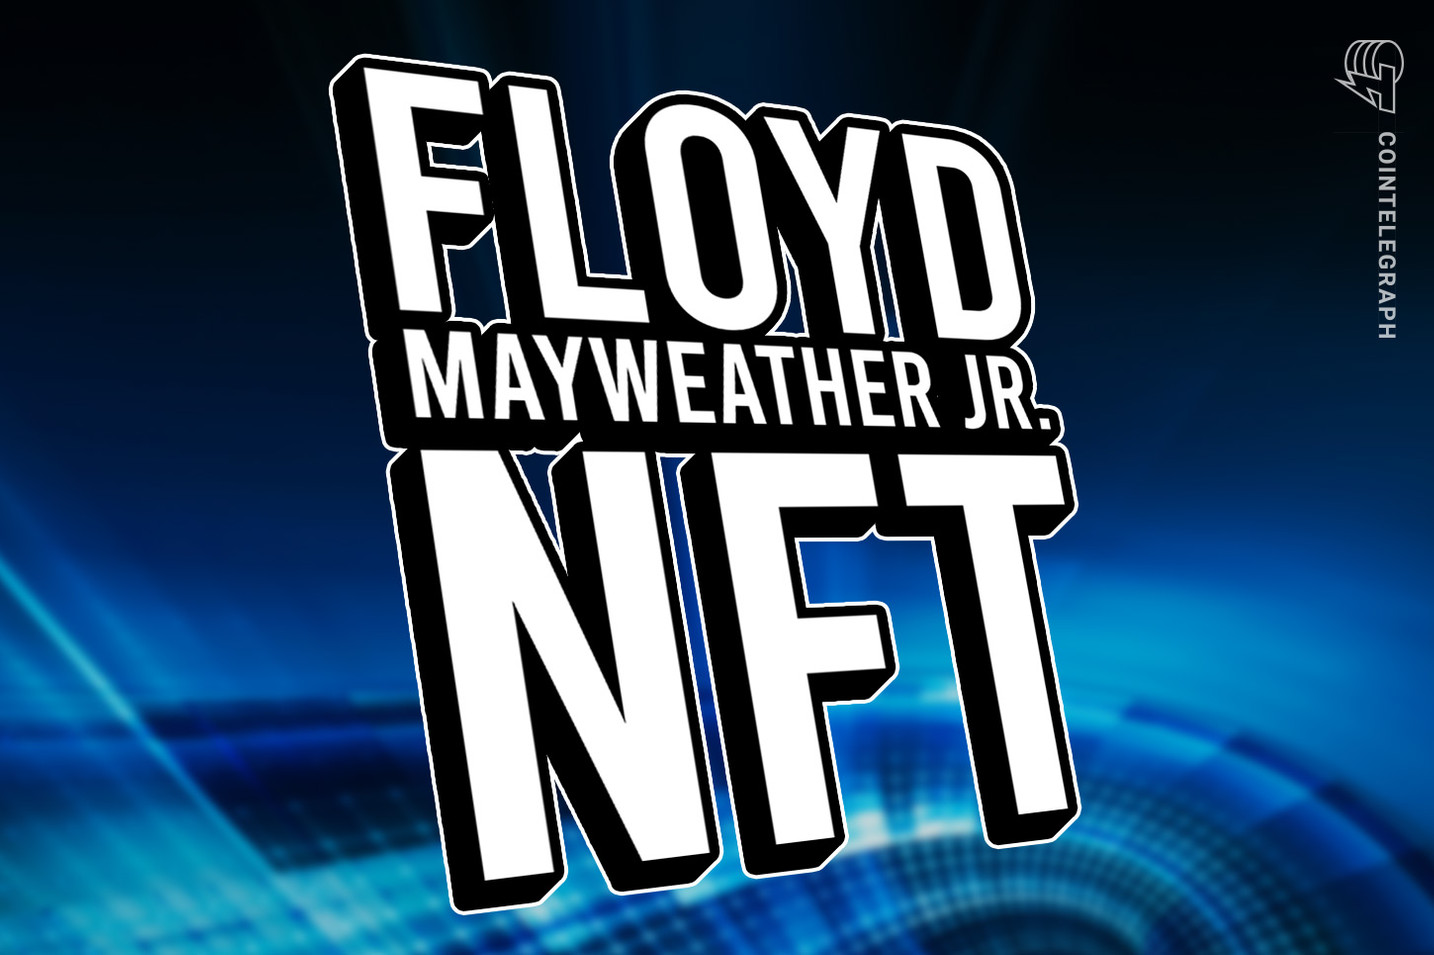 Floyd Mayweather Jr.'s legacy NFT collection available now on Rarible